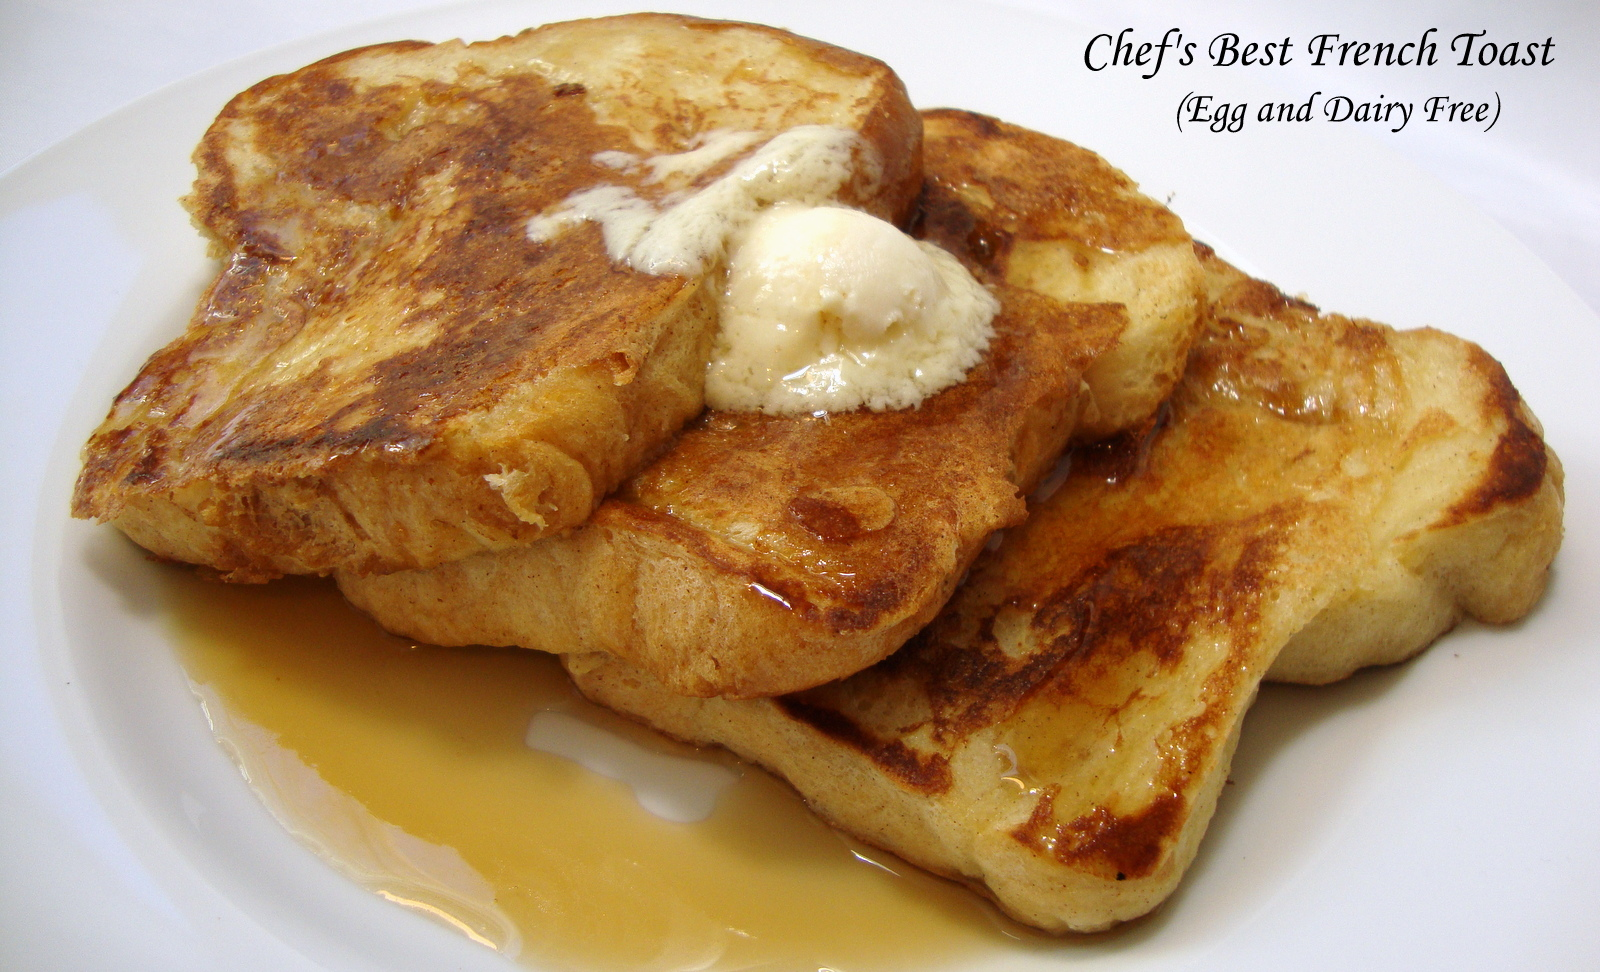 Chef's Best French Toast